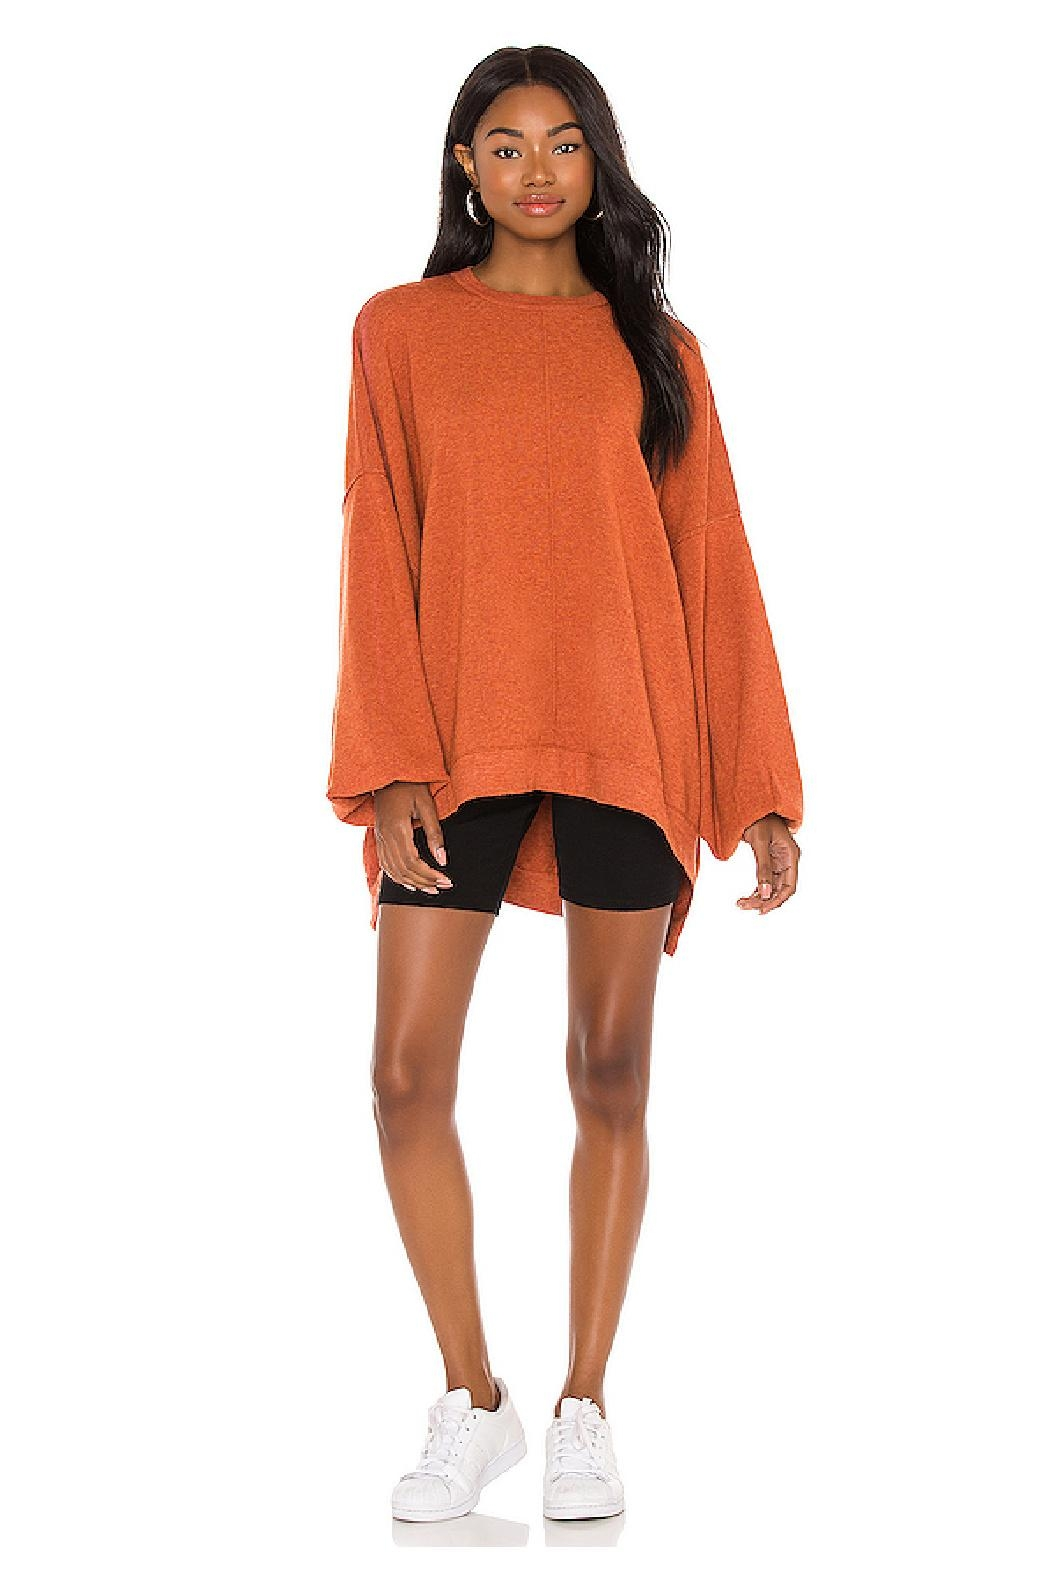 Free People Uptown Pullover - Main Image